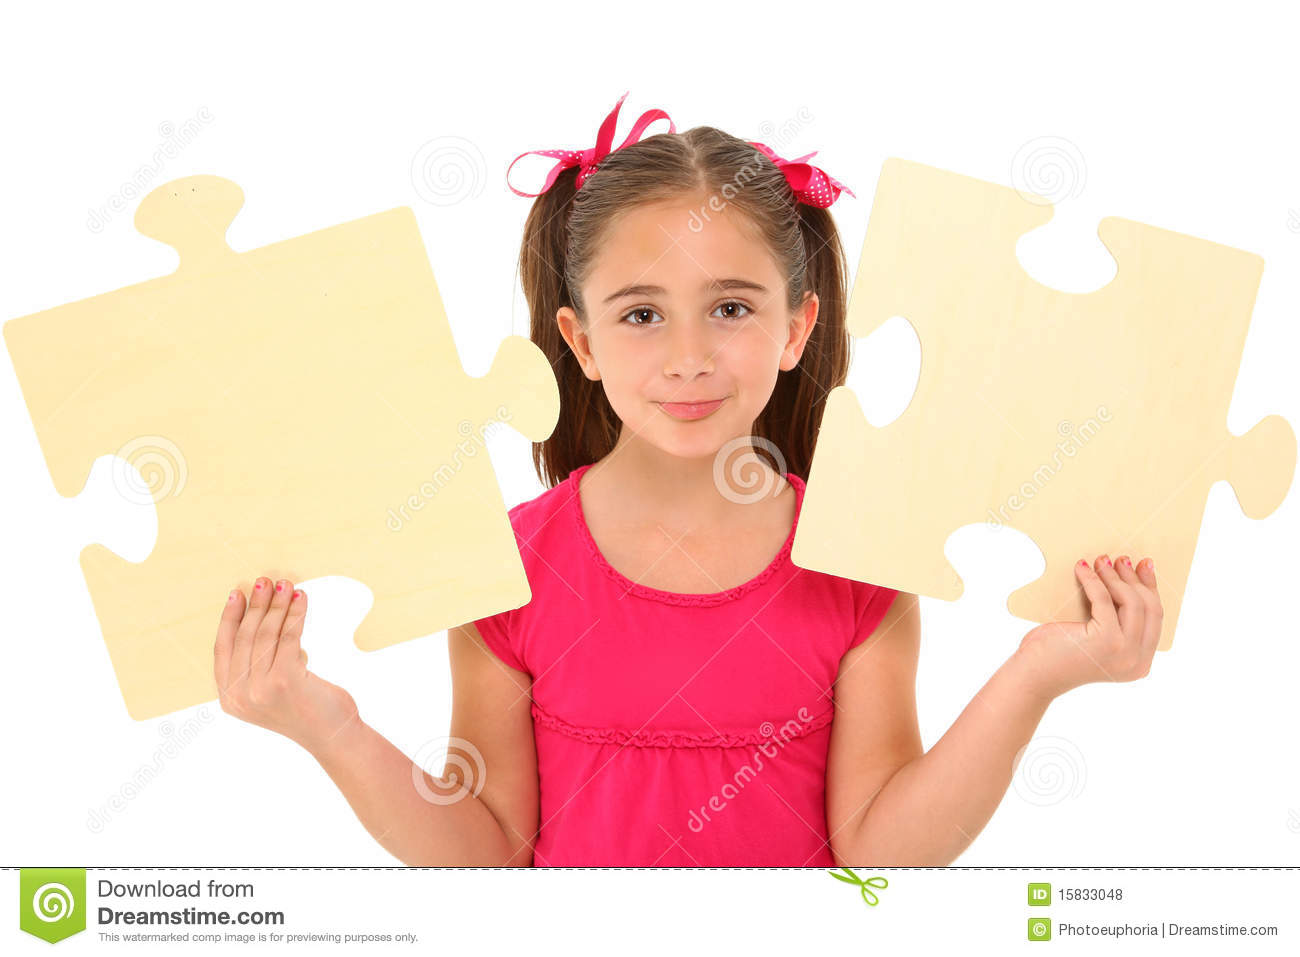 girl and oversize puzzle pieces Can you solve the boat puzzle  unsubscribe from physics girl cancel unsubscribe working subscribe subscribed unsubscribe 11m loading.